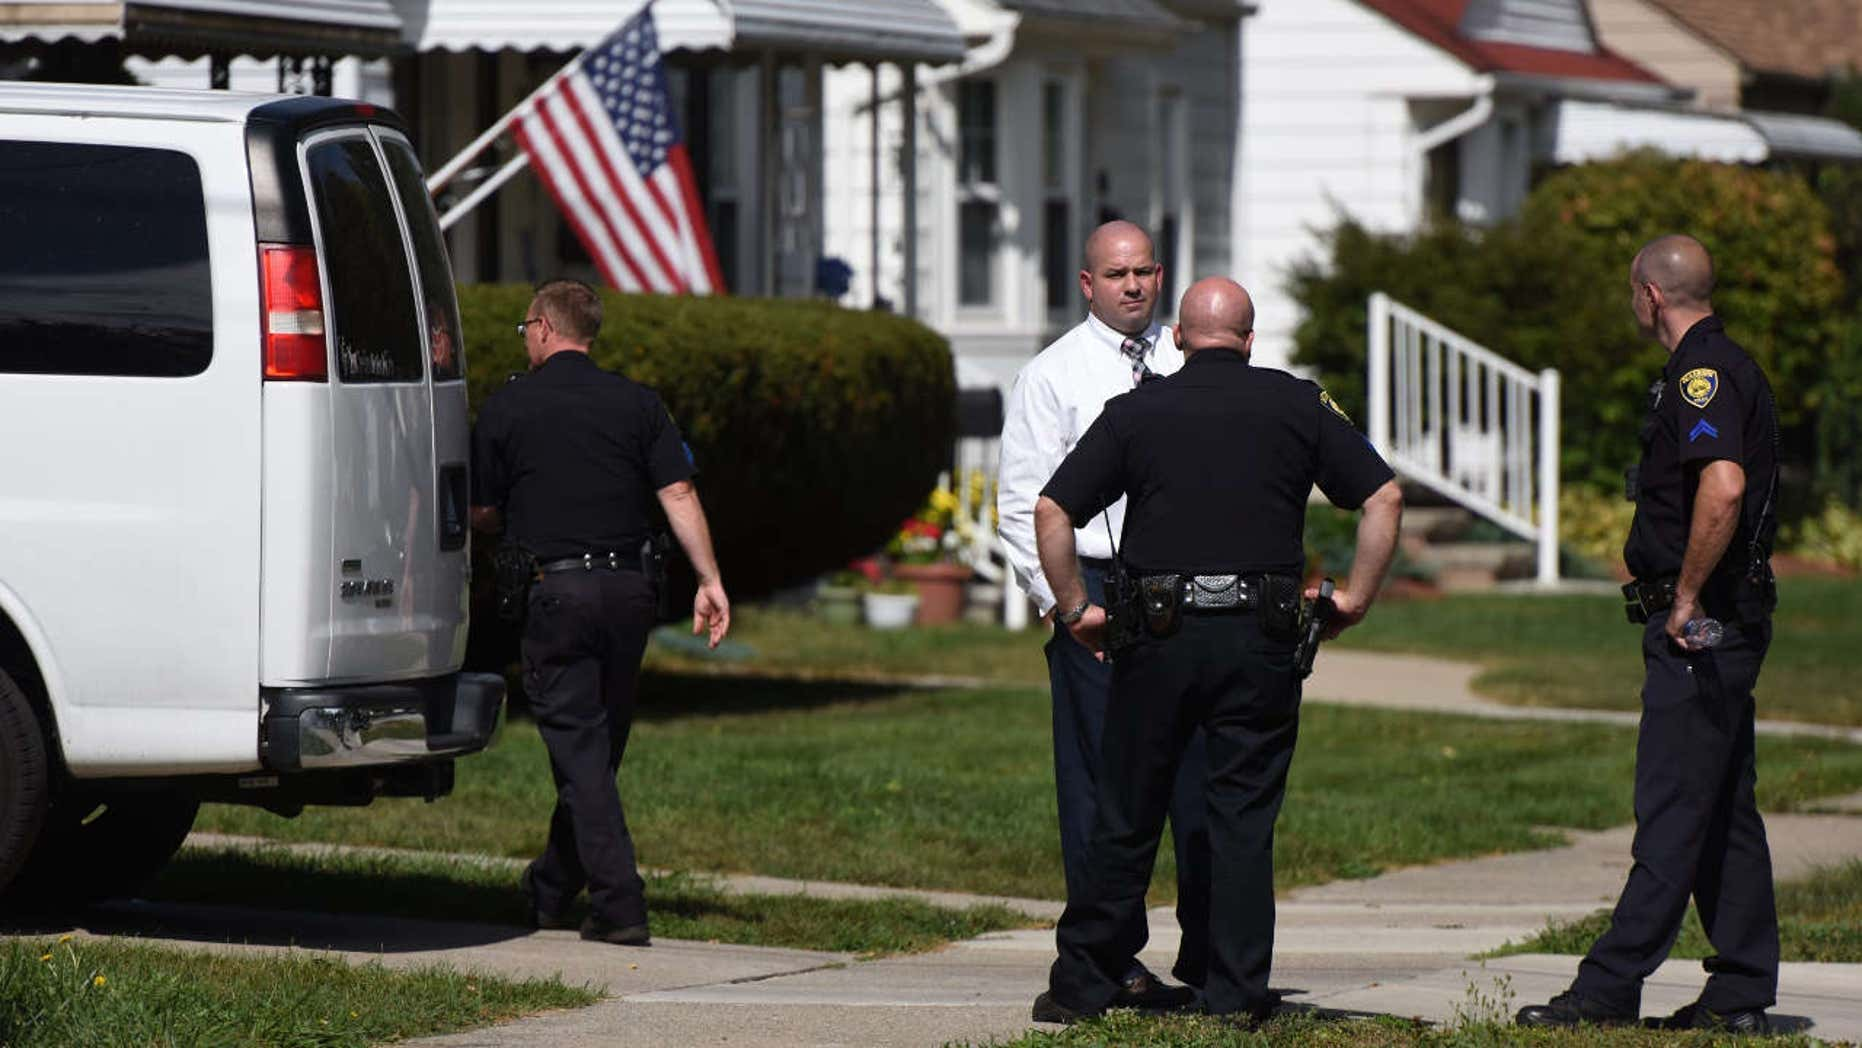 Police investigate at a home where two children were shot in Dearborn, Mich., Wednesday, Sept. 27, 2017.